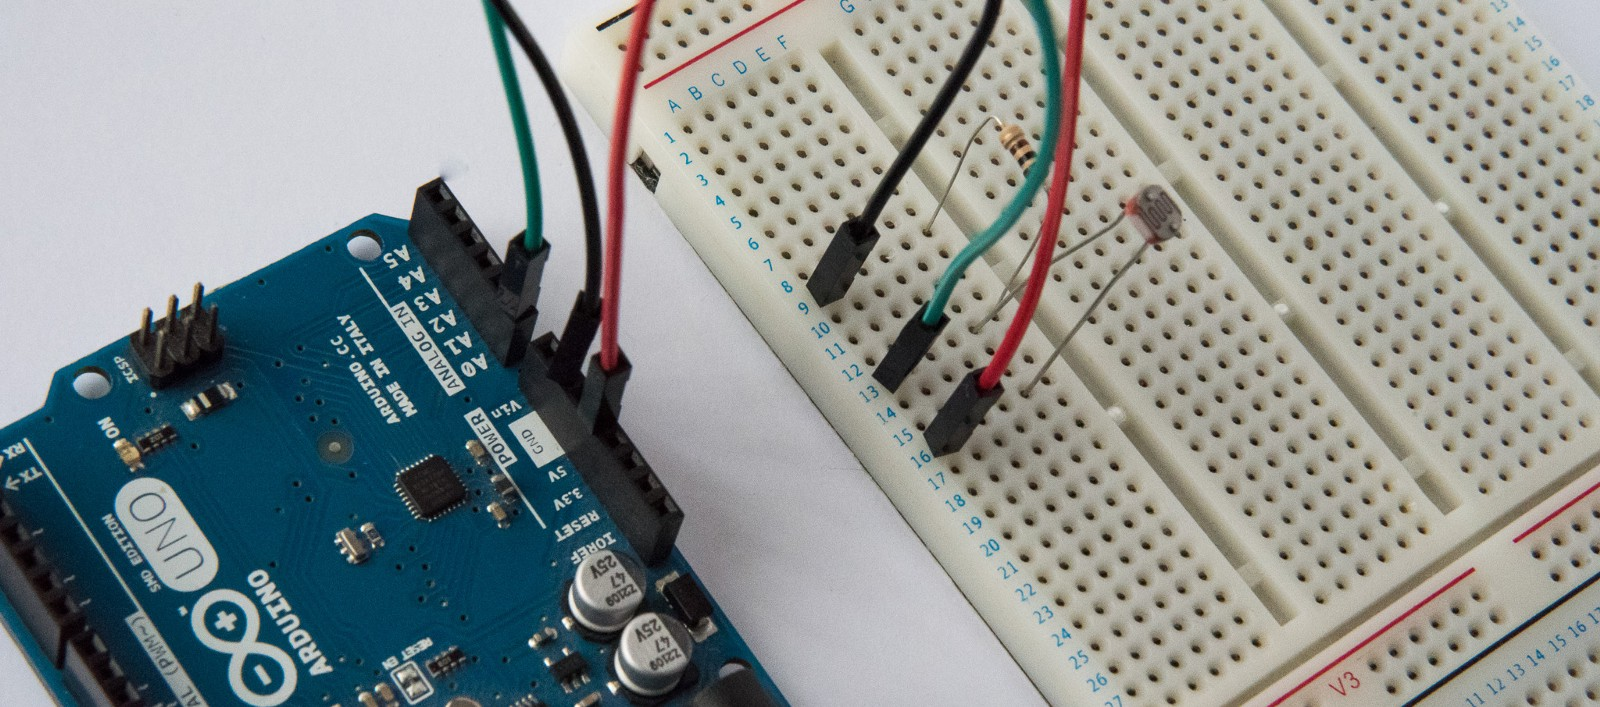 Introduction To Javascript Electronics Part 3 Working With Sensors Voltage Divider Circuit For Arduino Measure Analog Temperature The Is Now Completed So Lets Add Light Sensor Our App Into Arduinos On Ready Callback Function